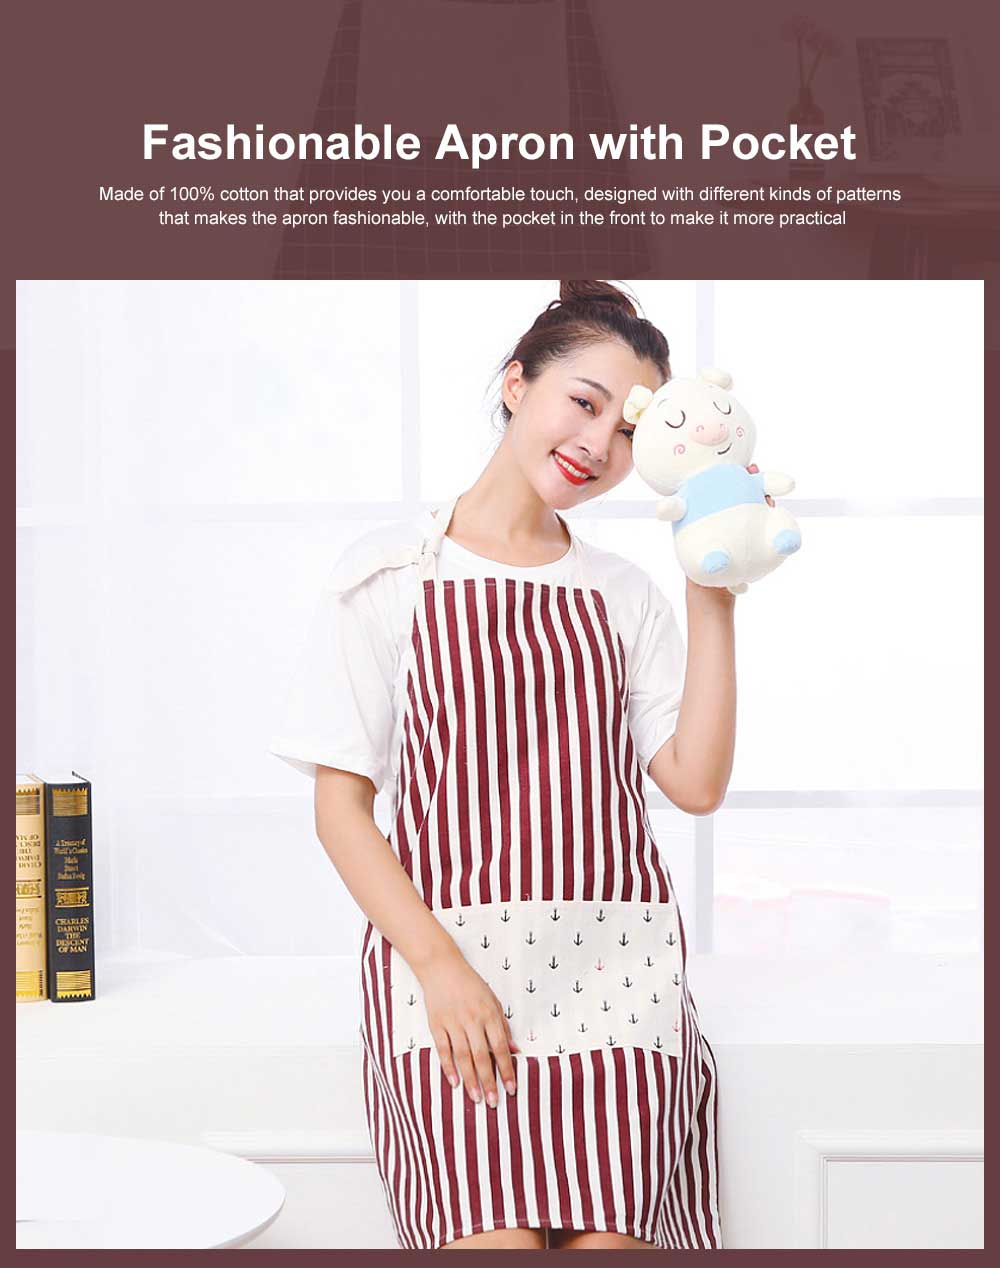 Fashionable Apron for Kitchen 100% Cooking Apron with Pocket Aprons with Strip Dot Printing Patterns Household Accessory 0